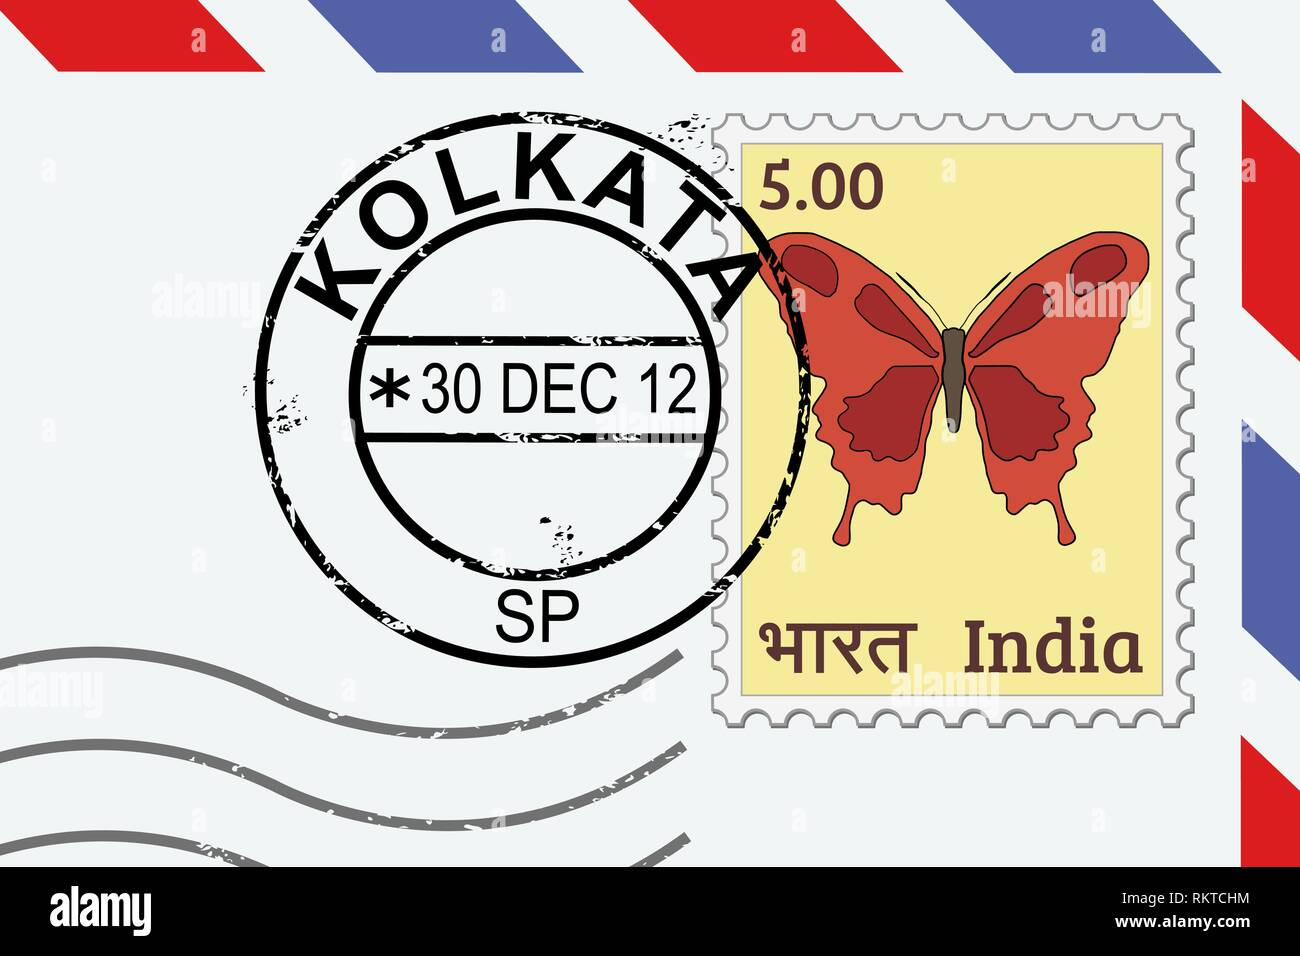 Kolkata (city known as Calcutta) postage stamp - India post stamp on a lettern. - Stock Vector